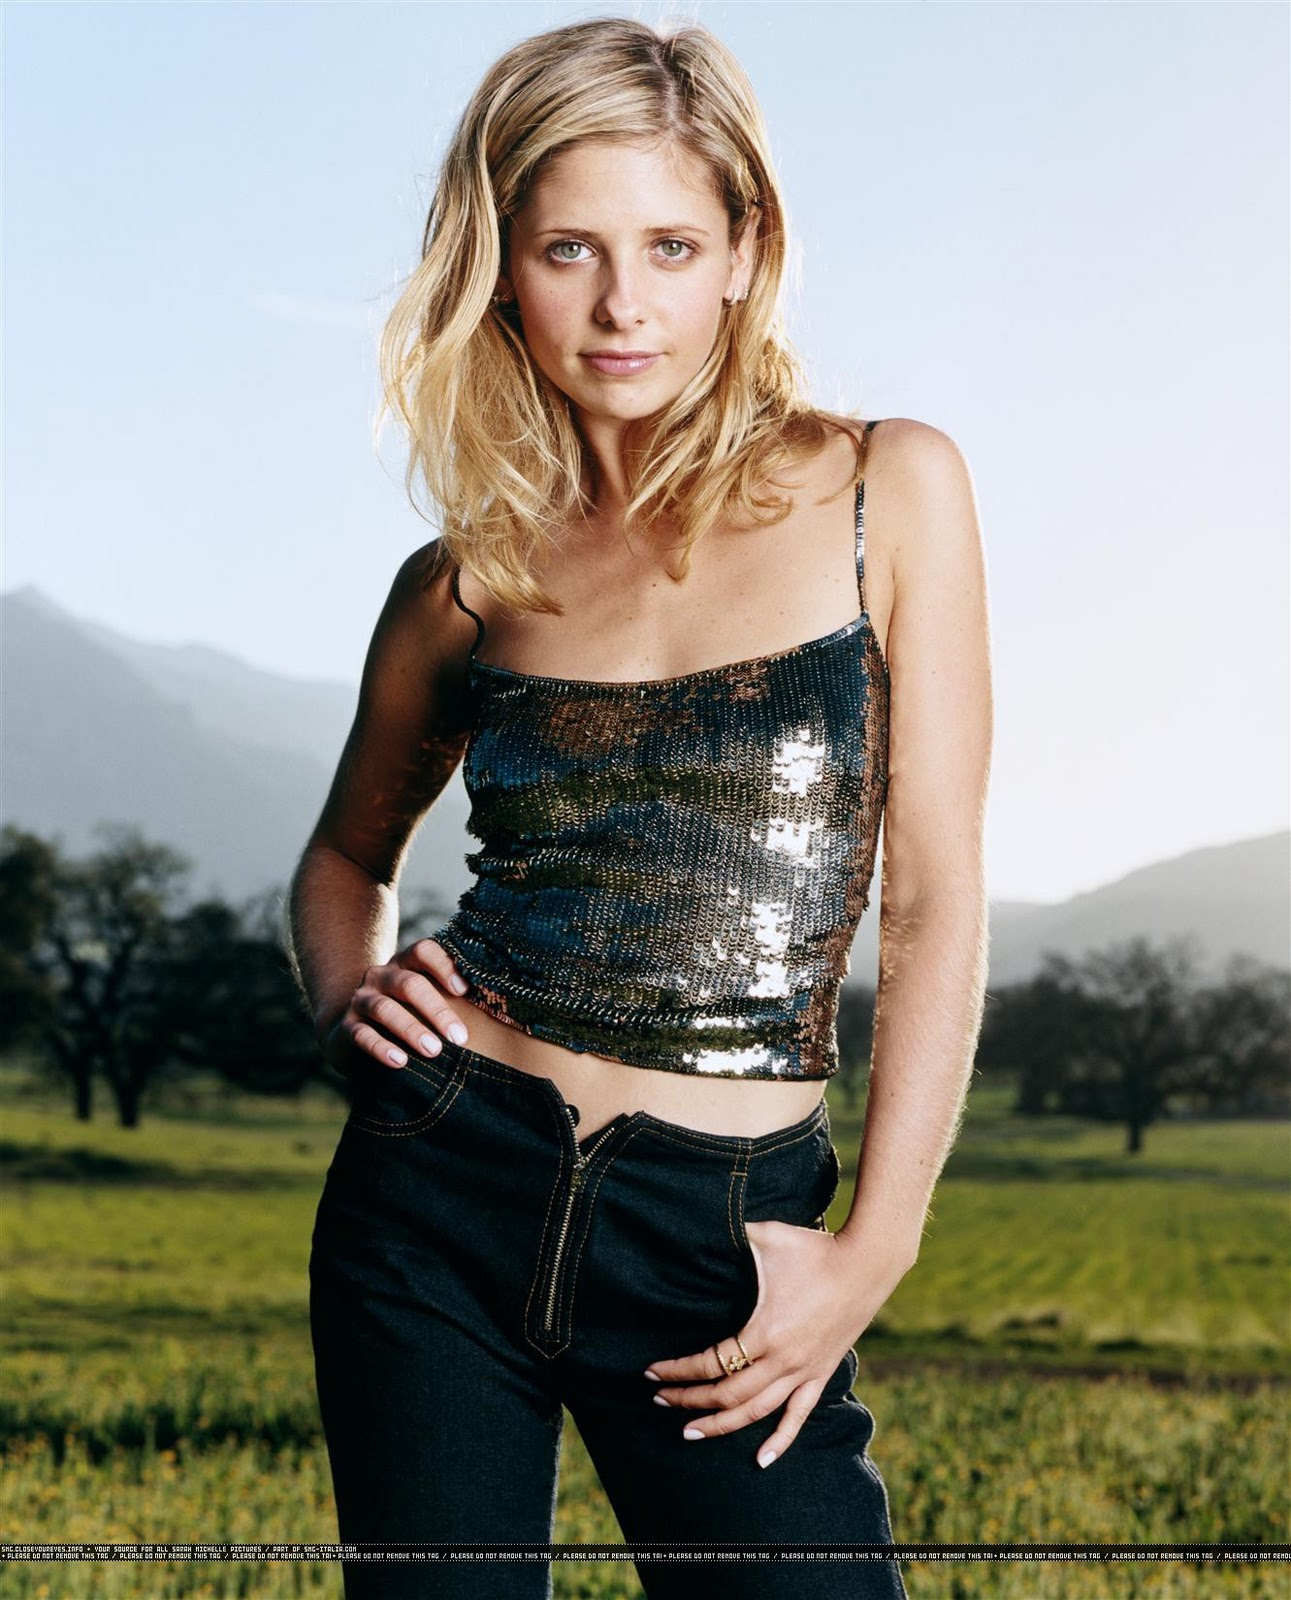 buffy, sarah michelle gellar, hairy arms Pictures, buffy